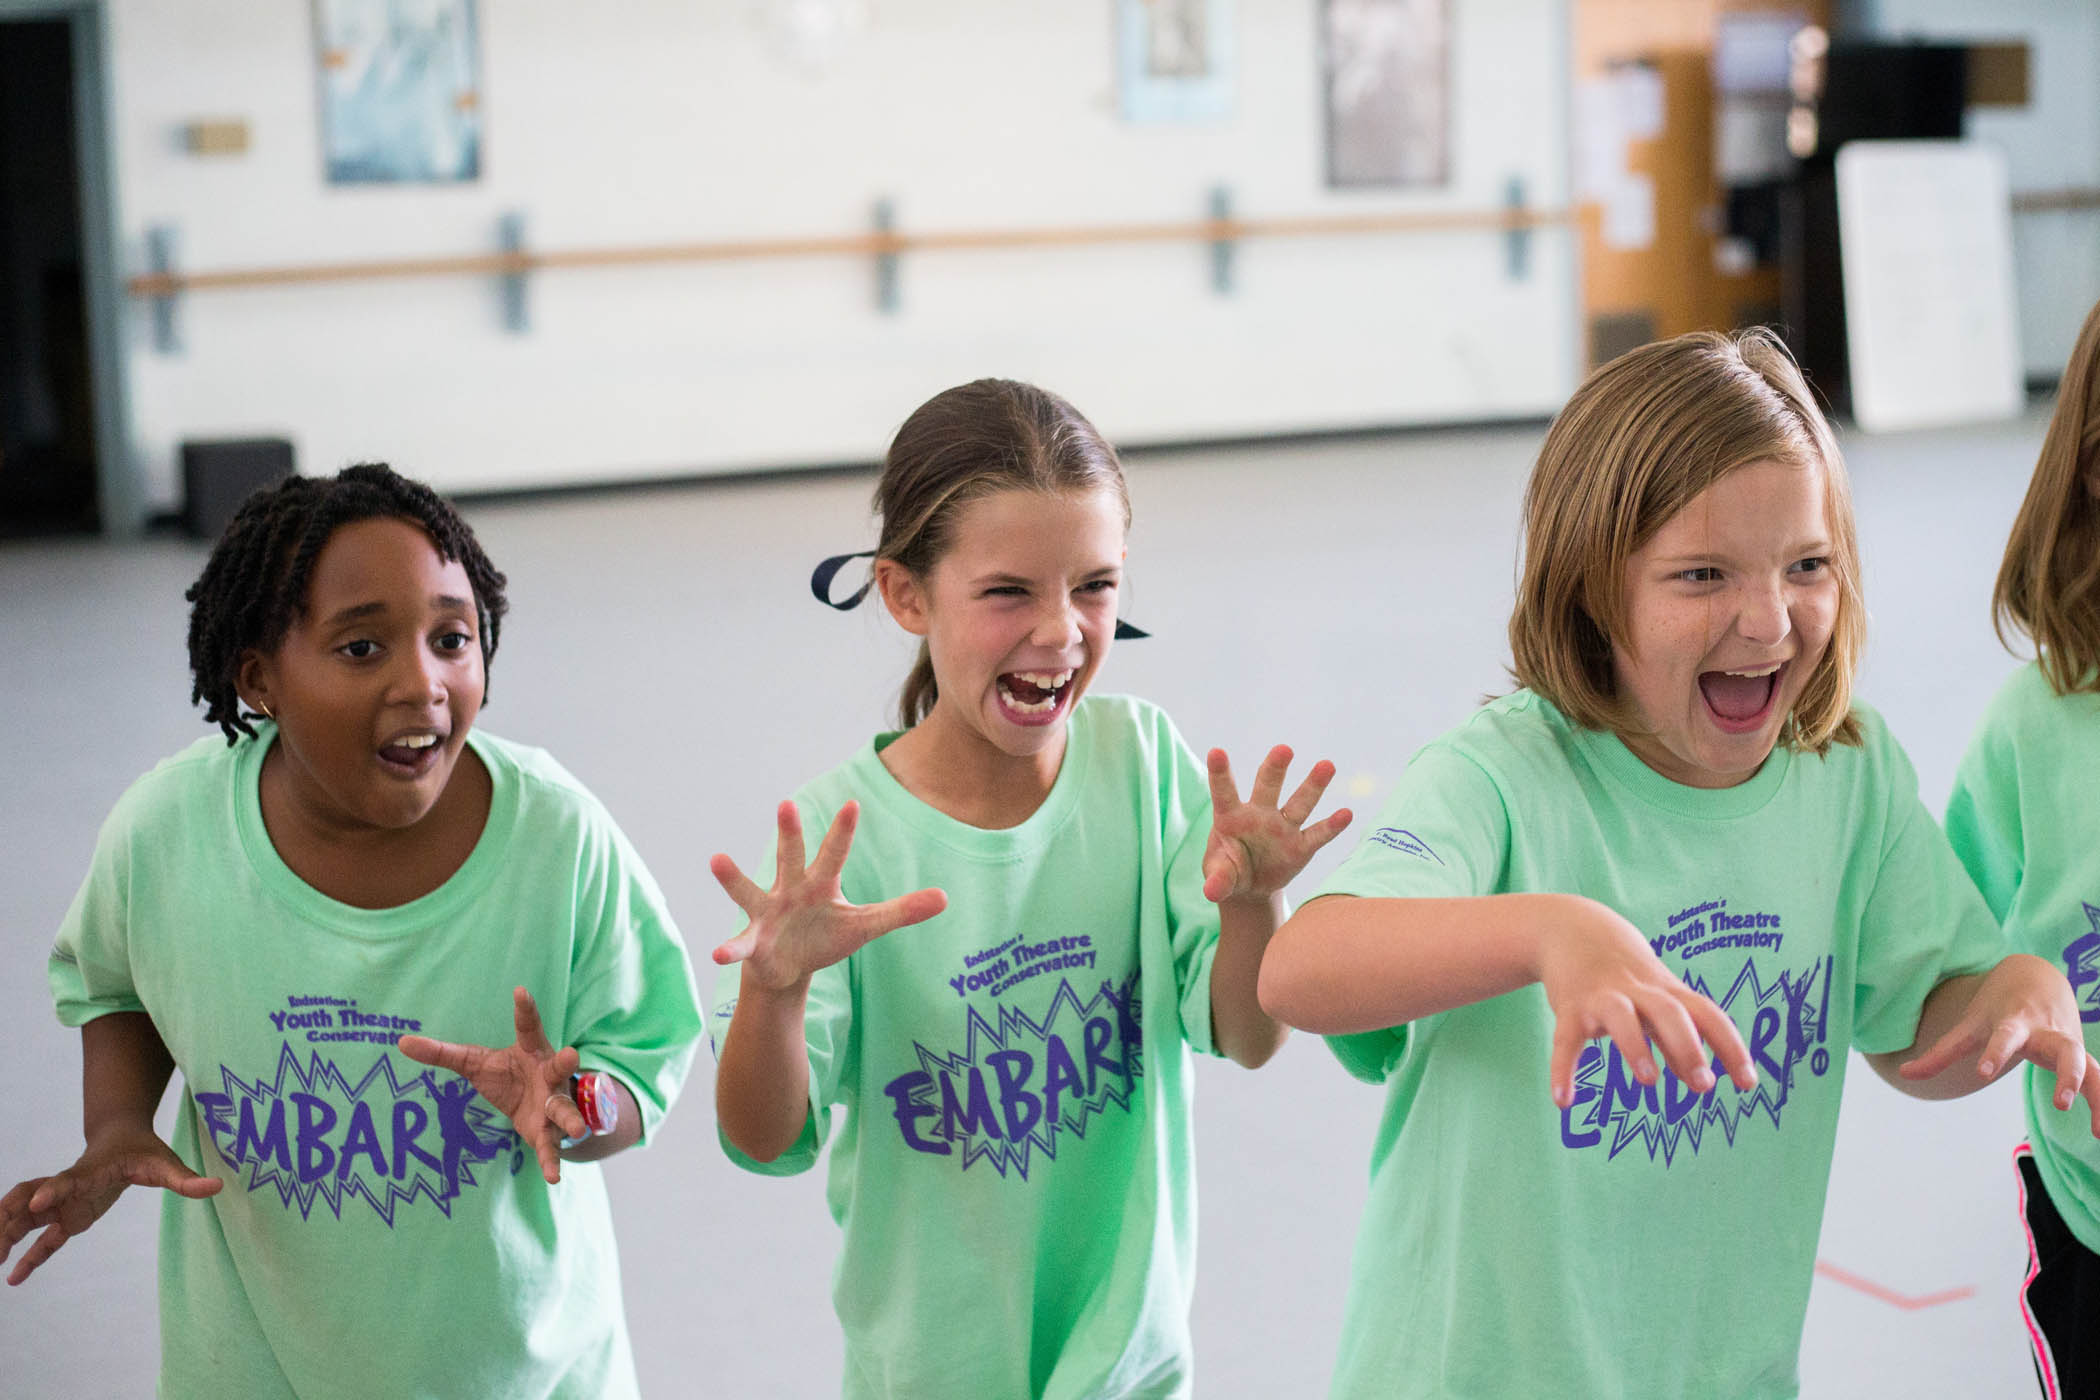 Embark Conservatory provides theatre training for local children in 3rd-12th grades.